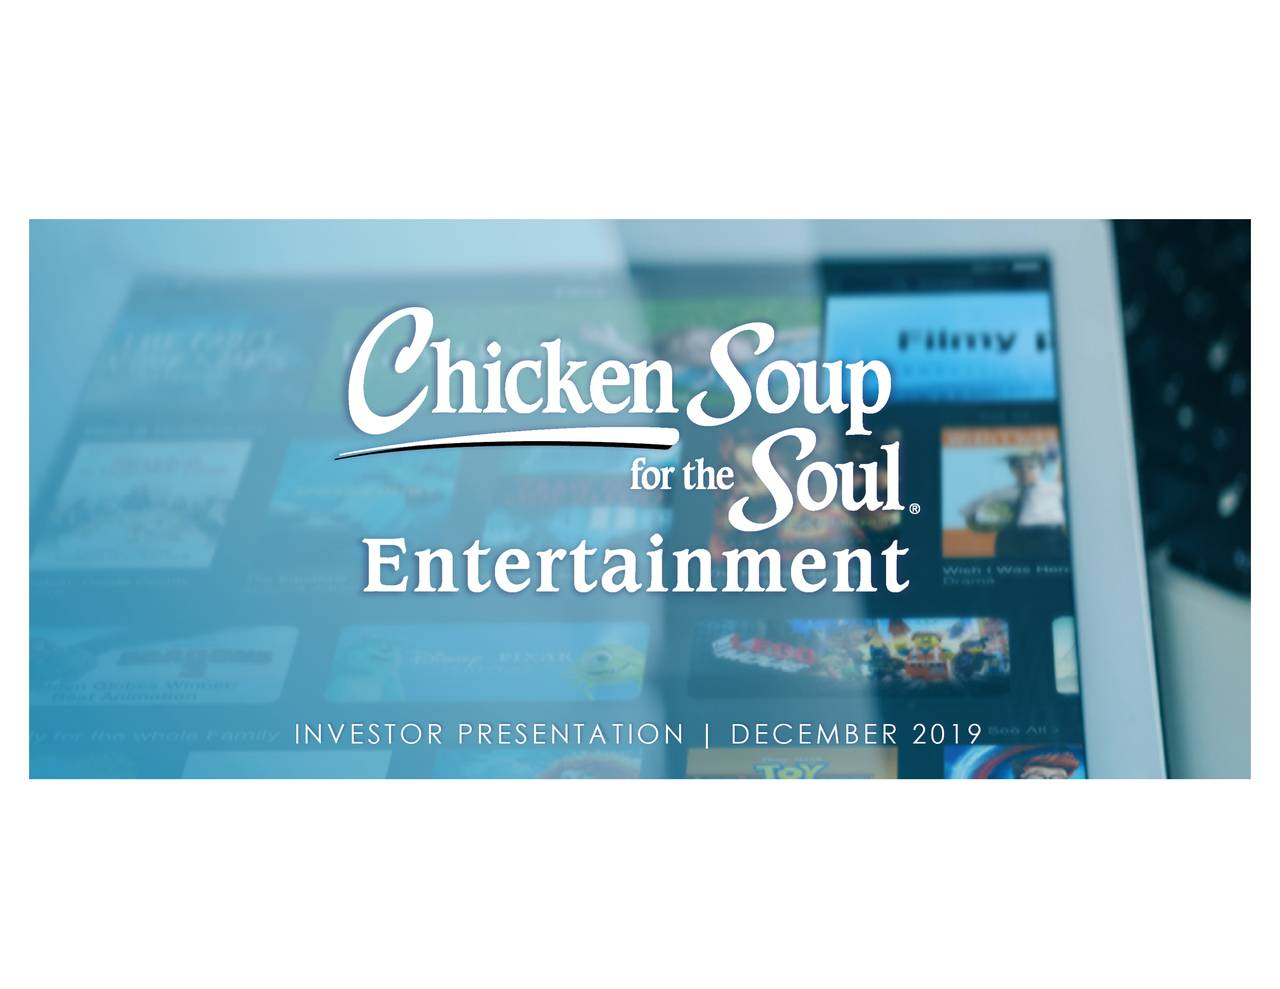 Chicken Soup for The Soul Entertainment (CSSE) Investor Presentation - Slideshow - Chicken Soup for the Soul Entertainment, Inc. (NASDAQ:CSSE) | Seeking Alpha